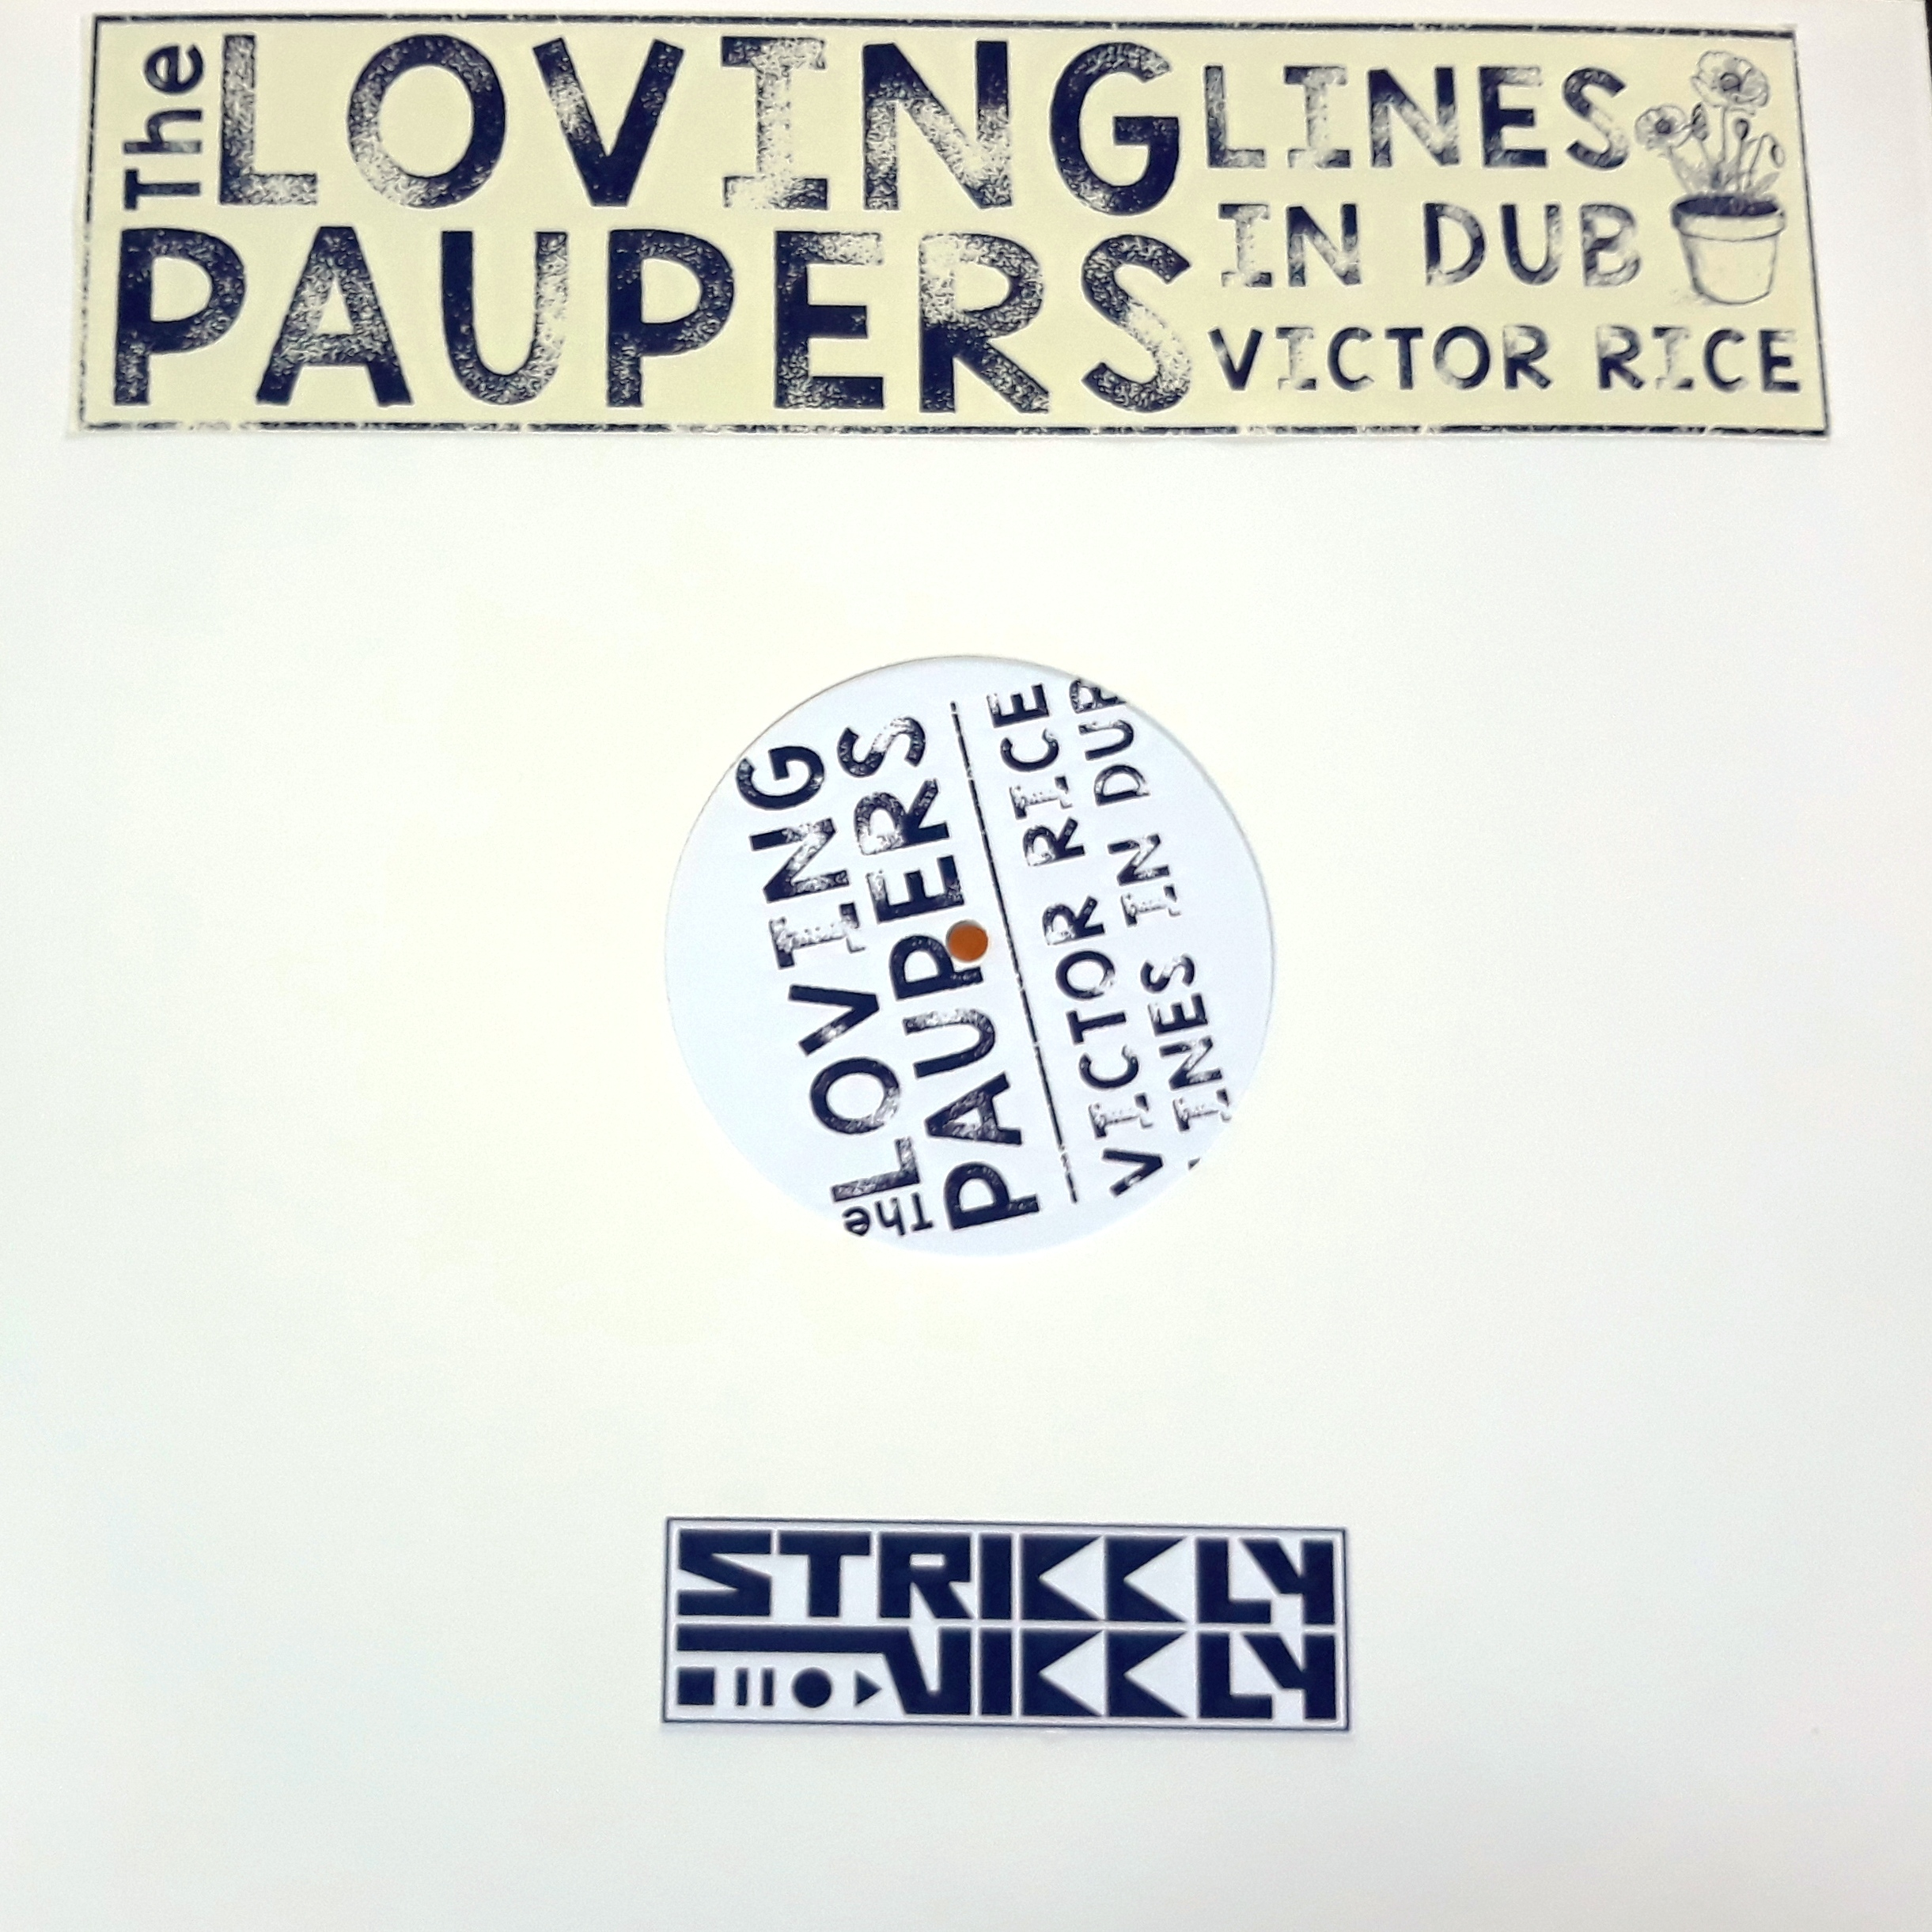 Loving Paupers/LINES IN DUB (V. RICE) LP